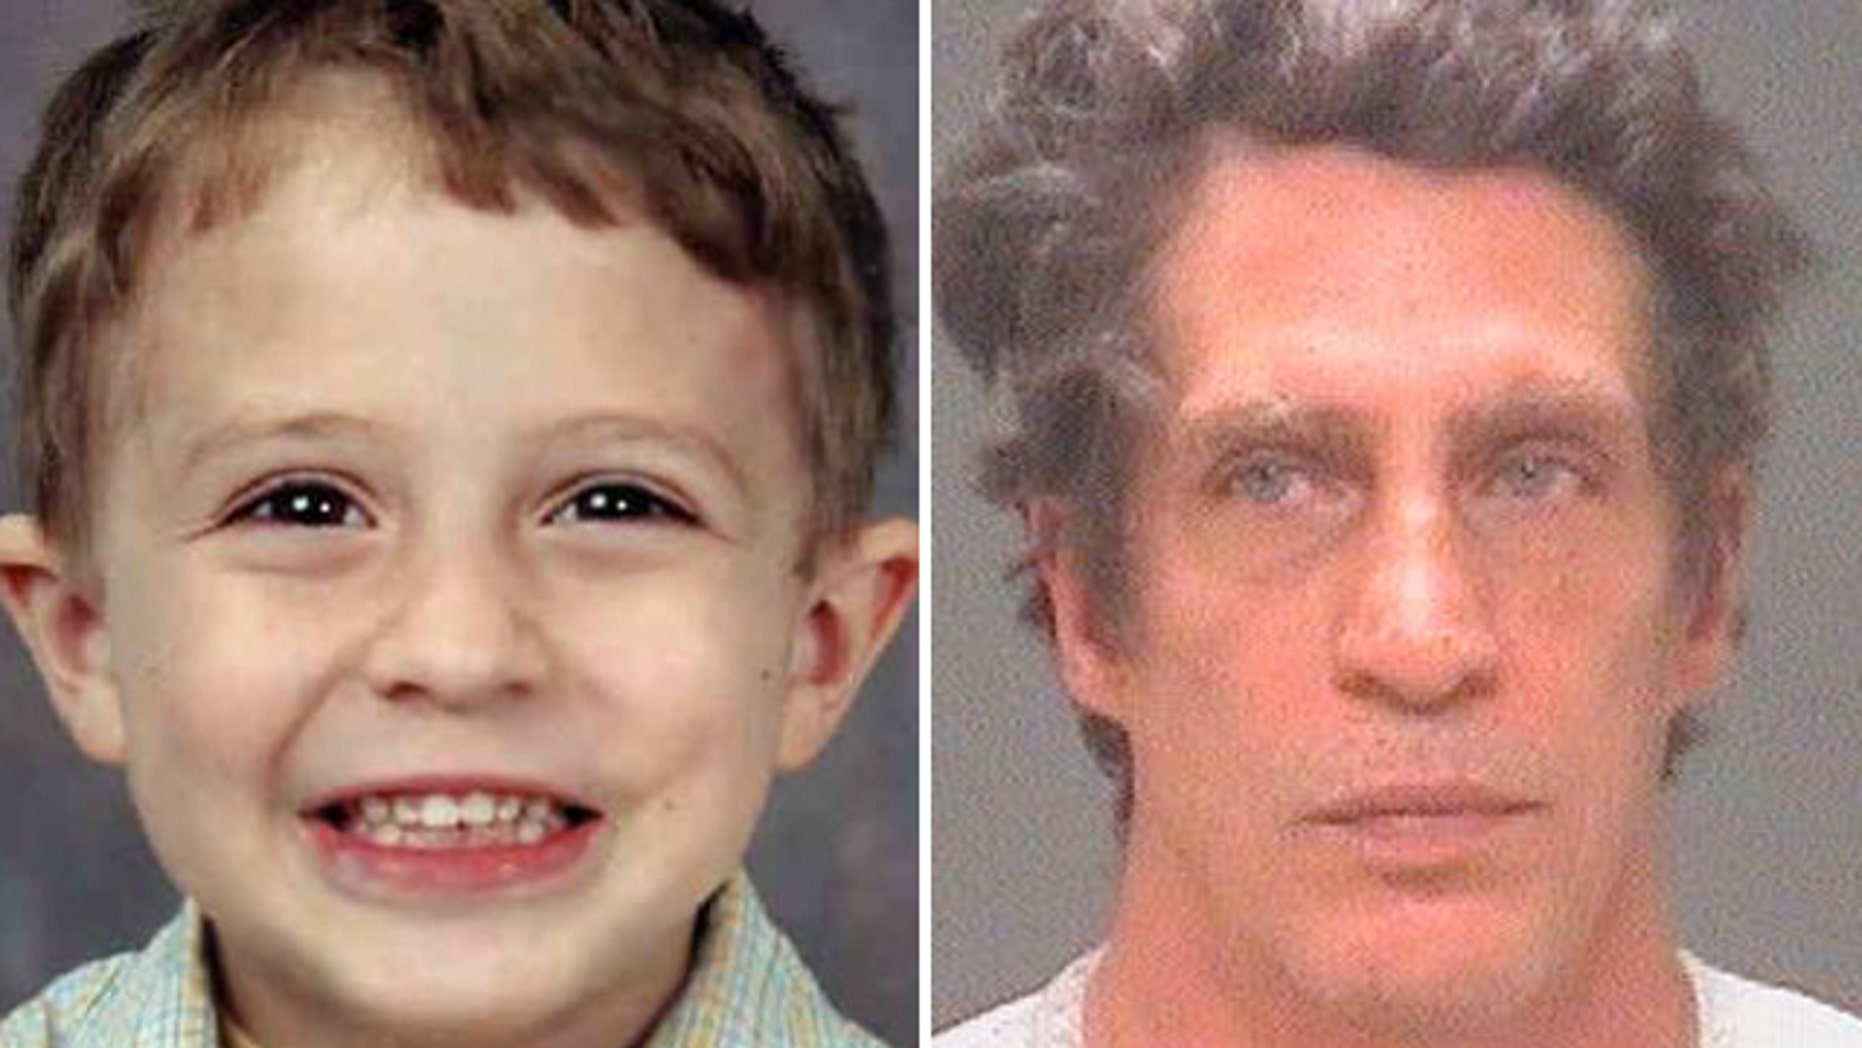 At left, Julian Hernandez at the time of his abduction in 2002, and father Bobby Hernandez after his arrest Nov. 2, 2015.